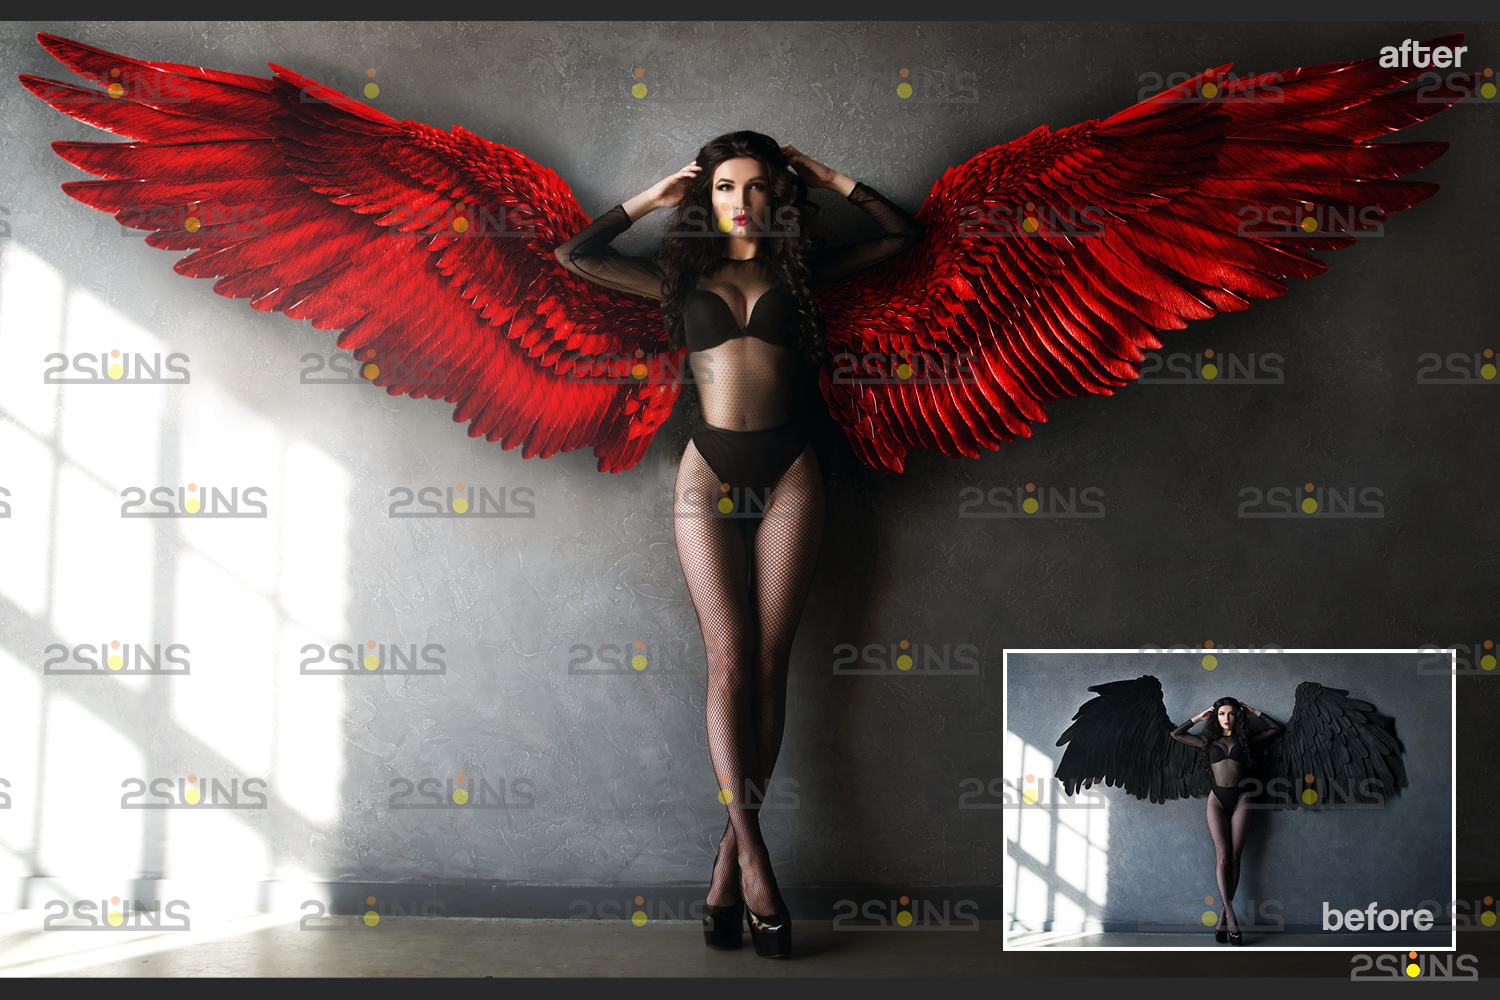 Red angel wings png & Photoshop overlay: Digital angel wings overlay, Digital backdrops wings, Fire - 002 66 -